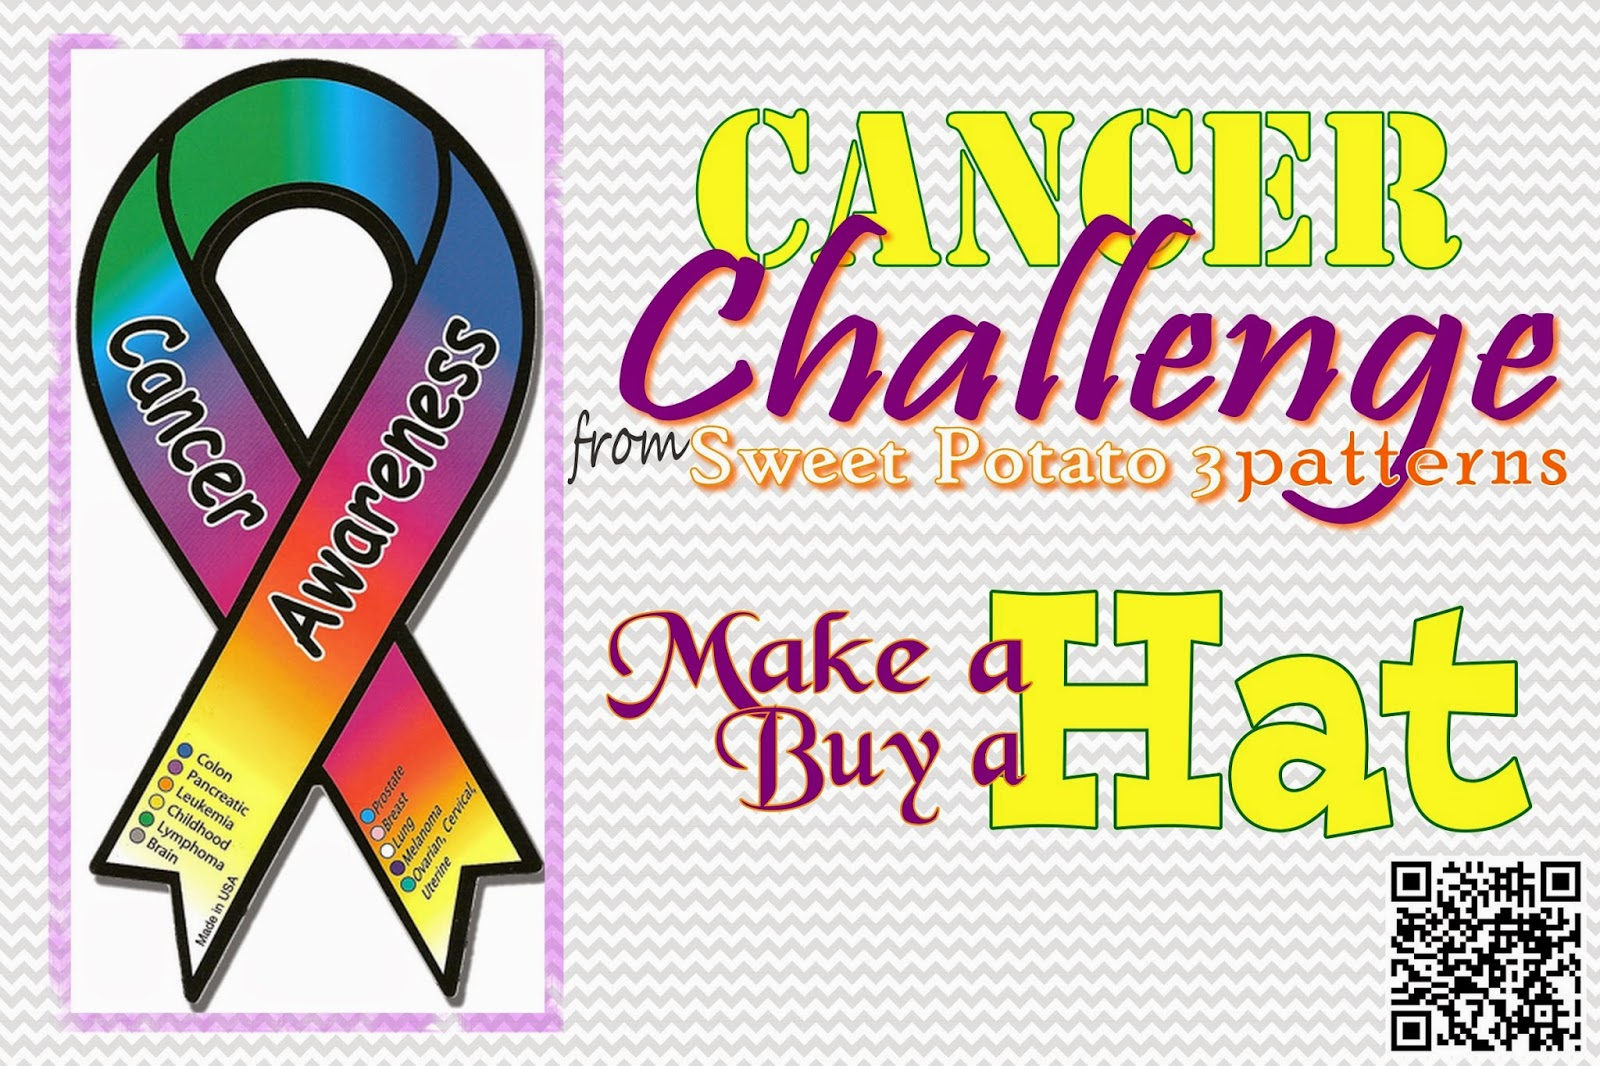 Cancer Charity Drive